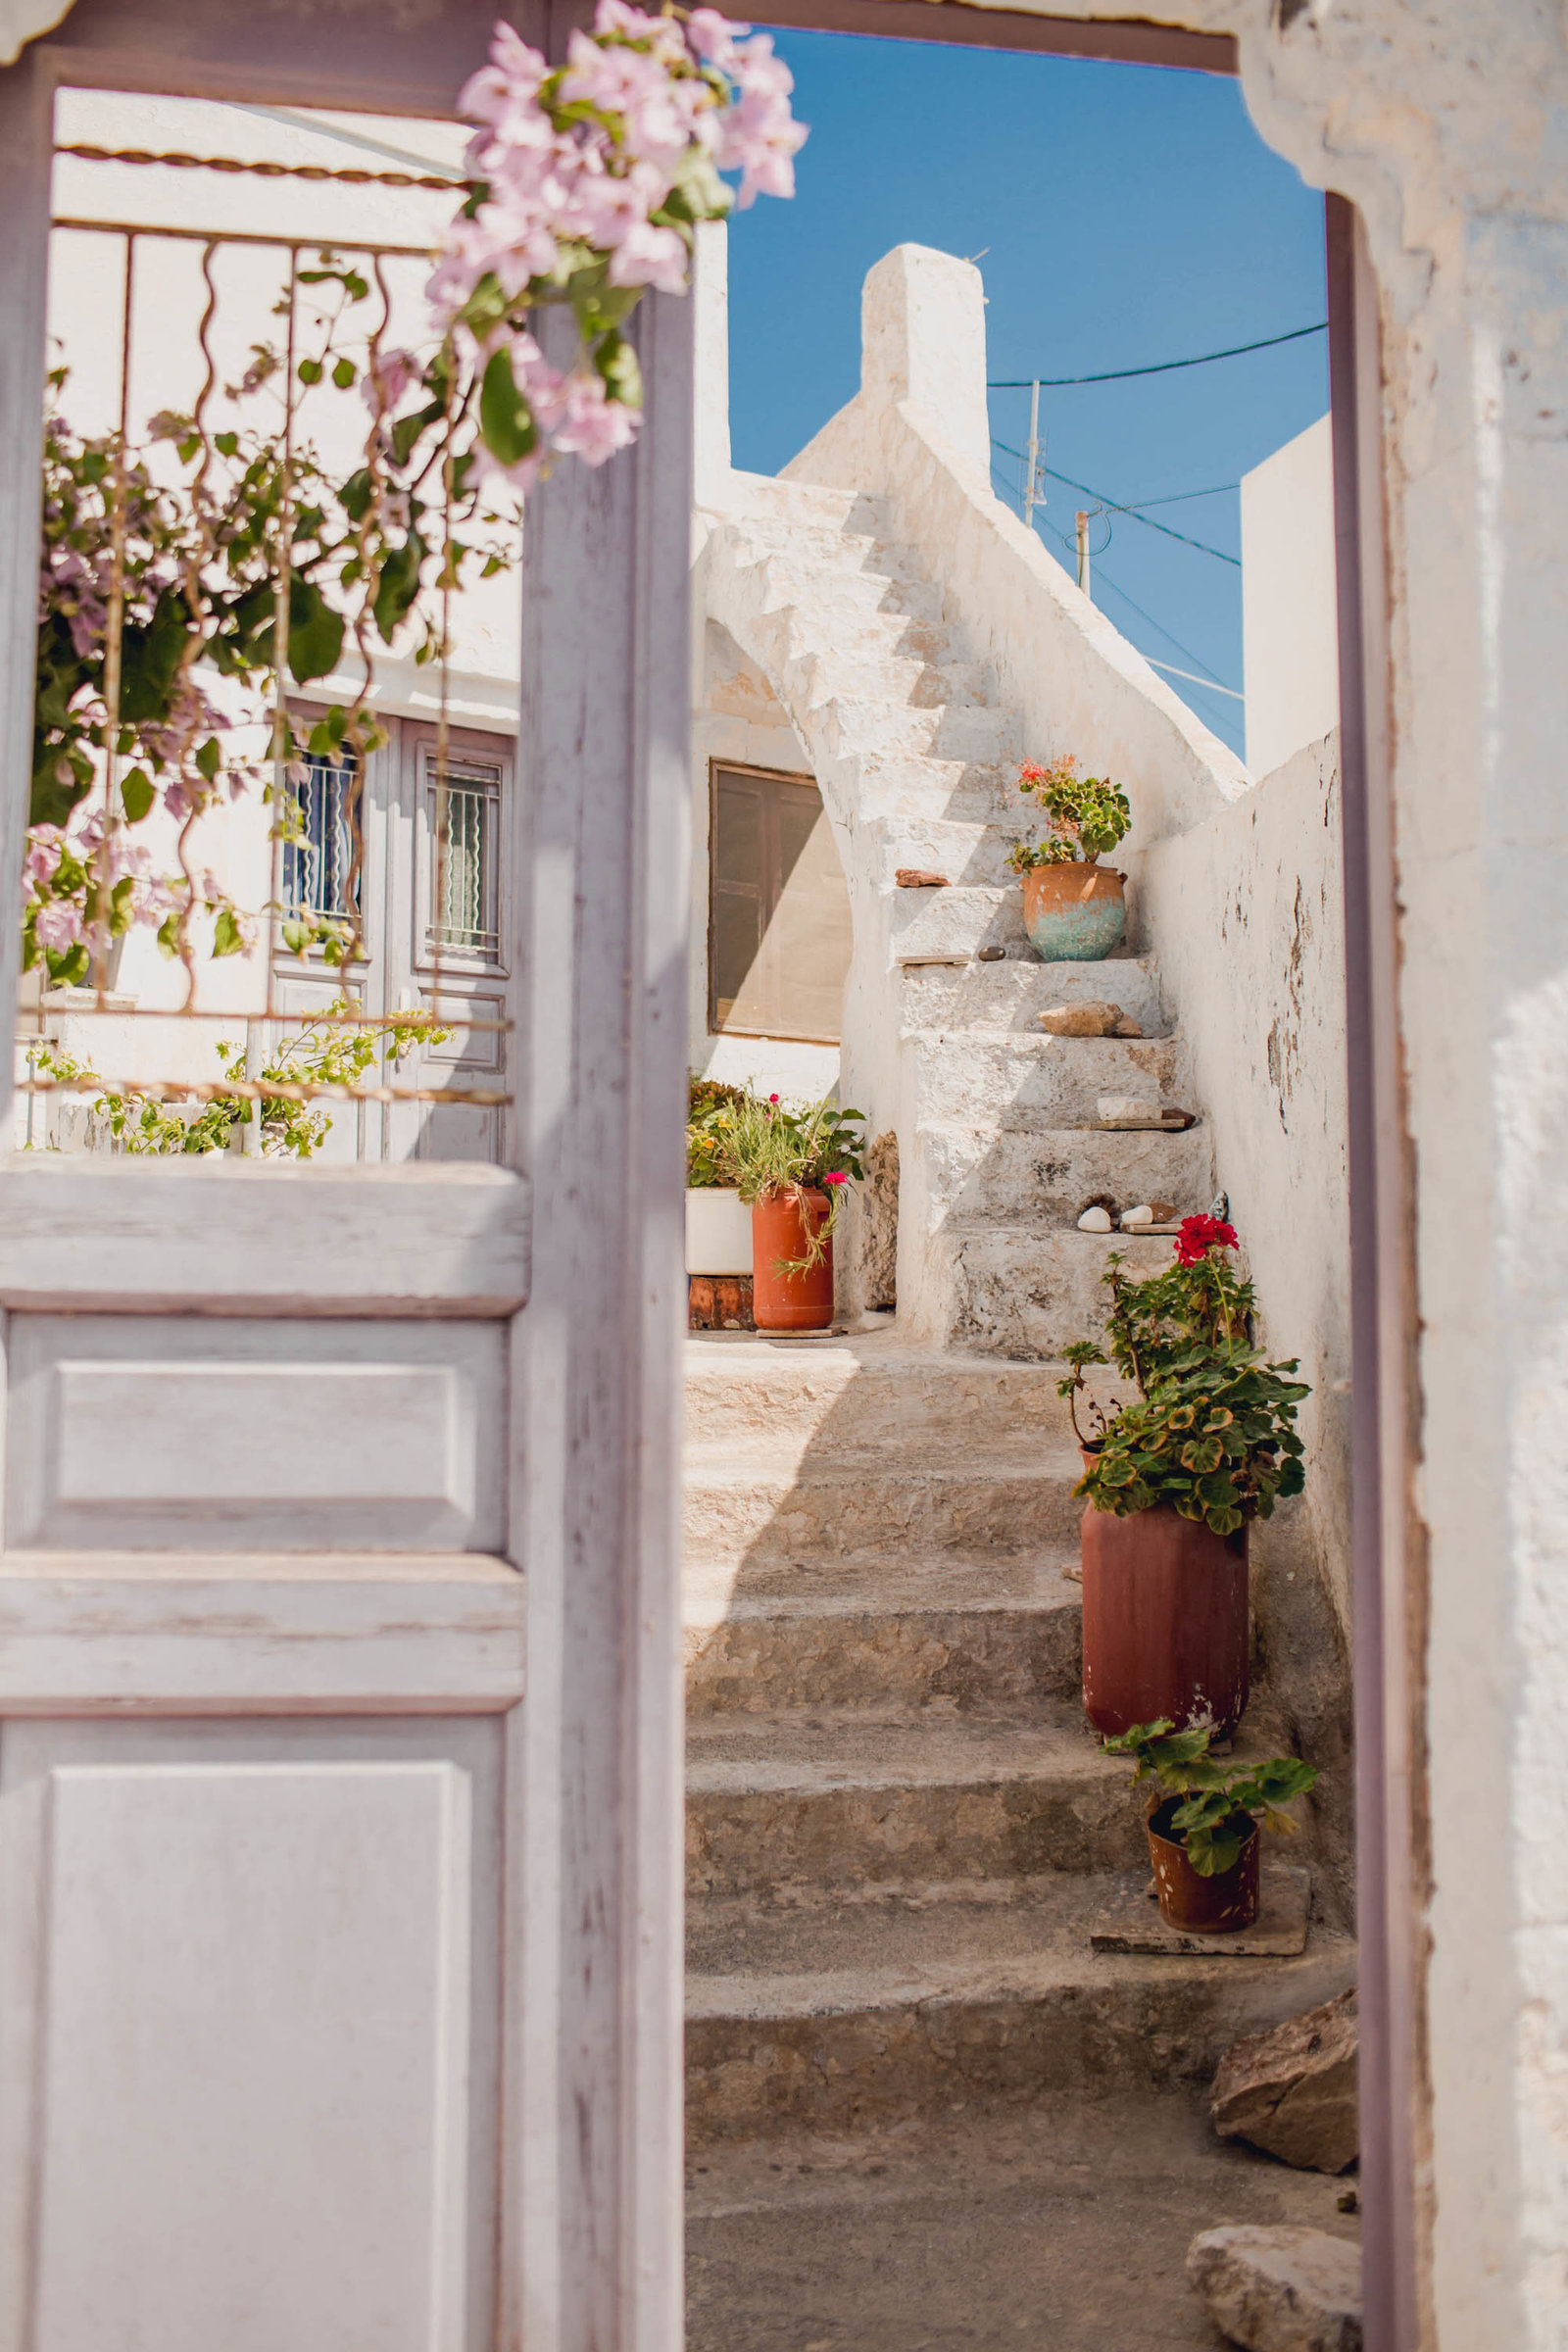 lilac-door-steps-flower-pyrgos-destination-travel-santorini-wedding-kate-timbers-photo-2729